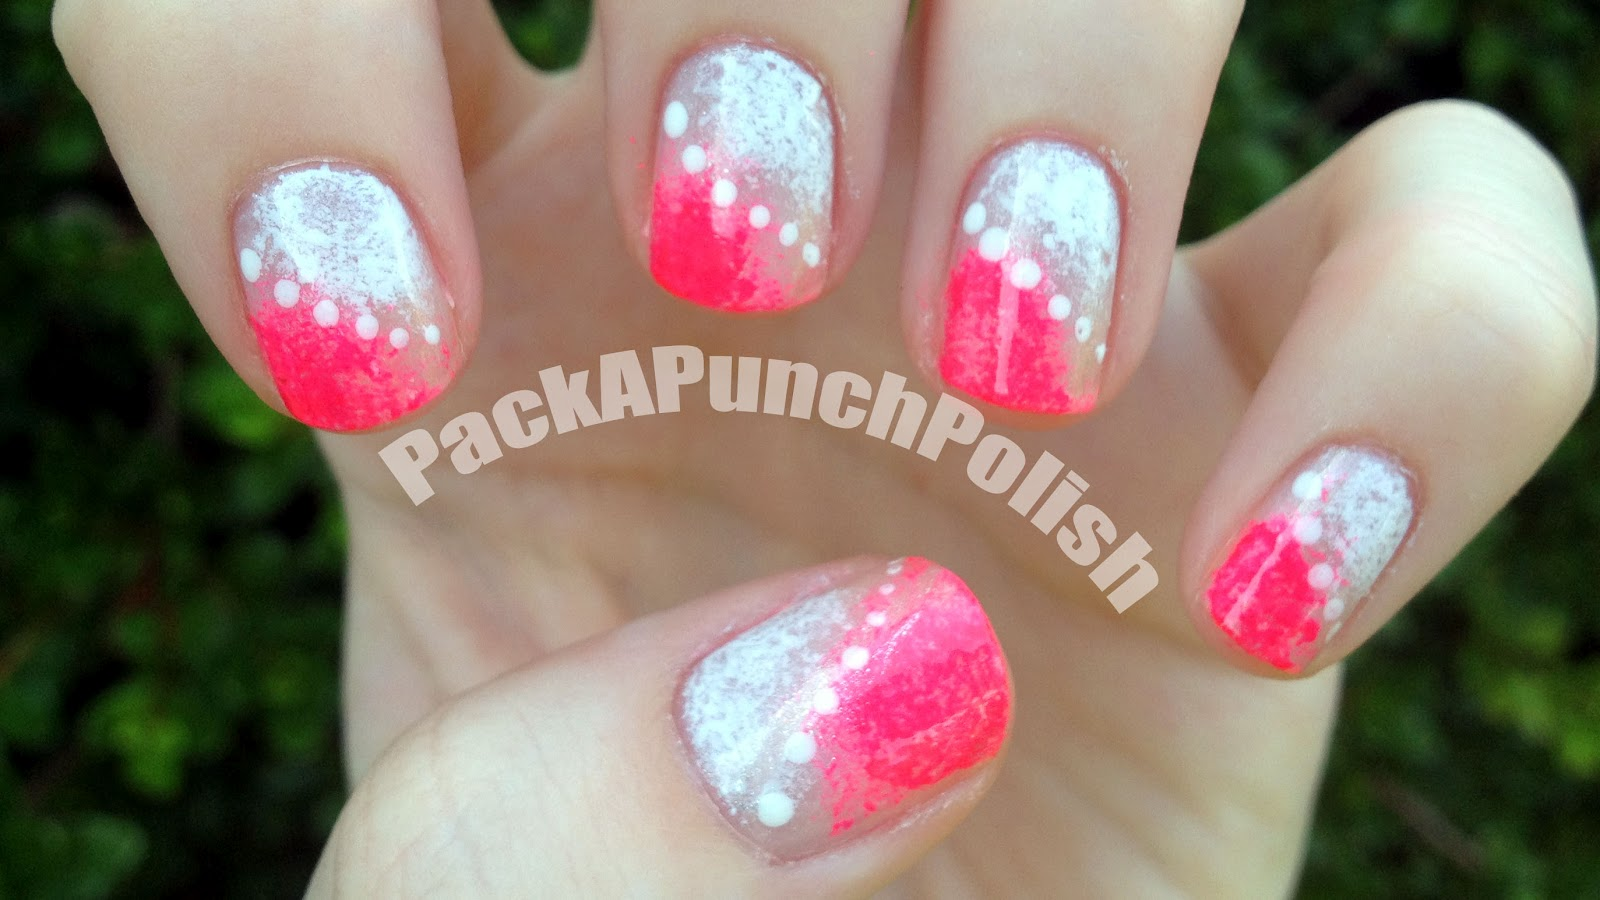 Nail art pictures nail art ideas homecoming packapunchpolish easy diy prom nail art prinsesfo Gallery